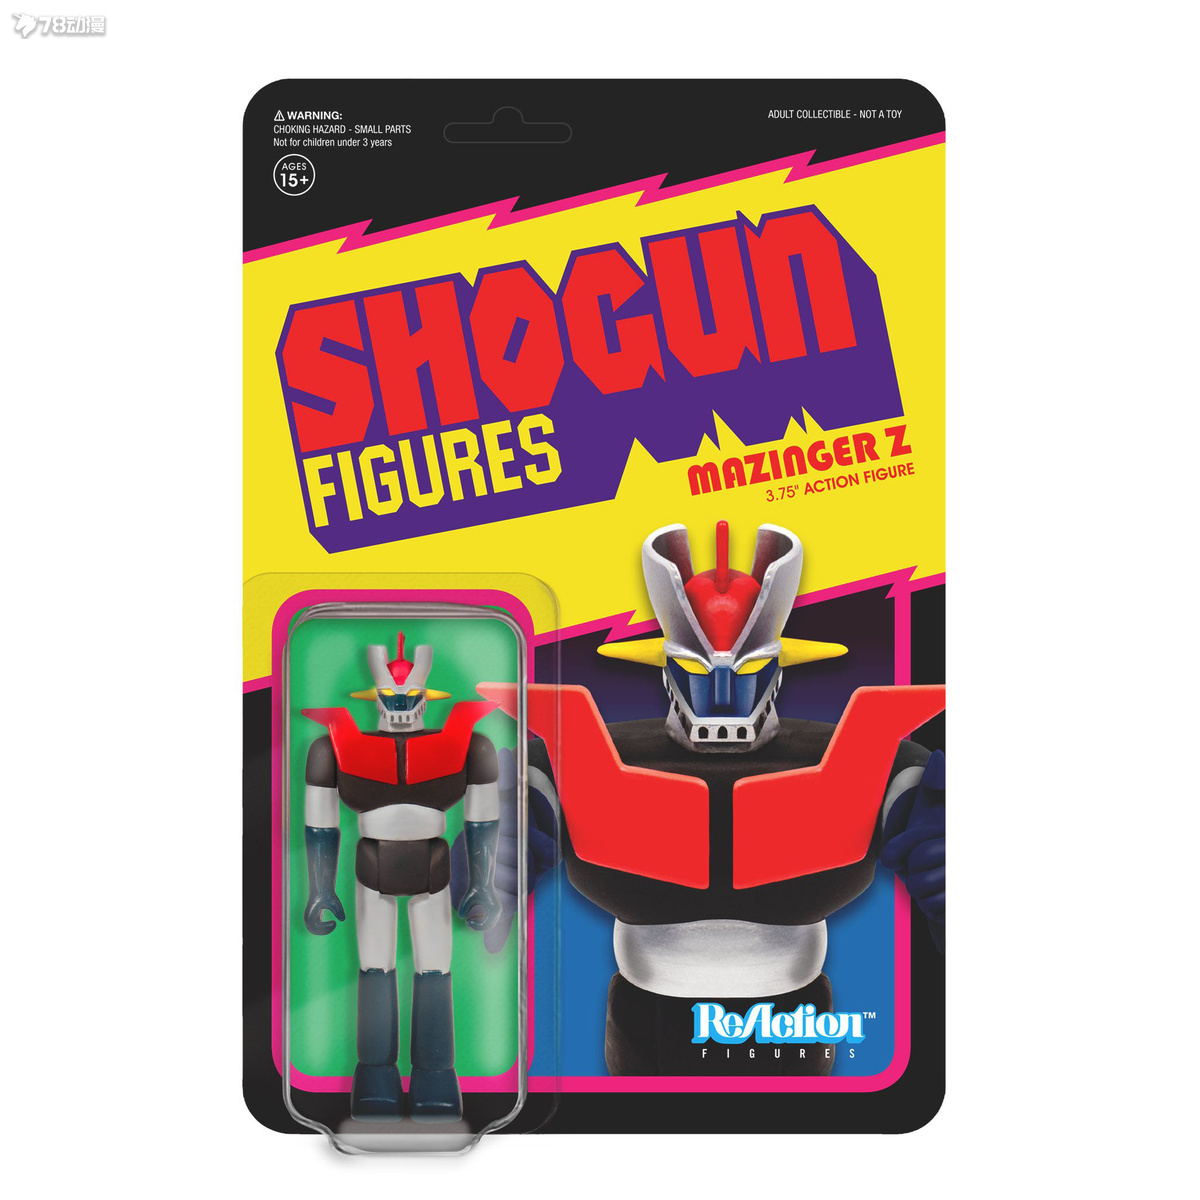 Shogun-ReAction-Figure-Mazinger-Z-Cartoon-1.jpg